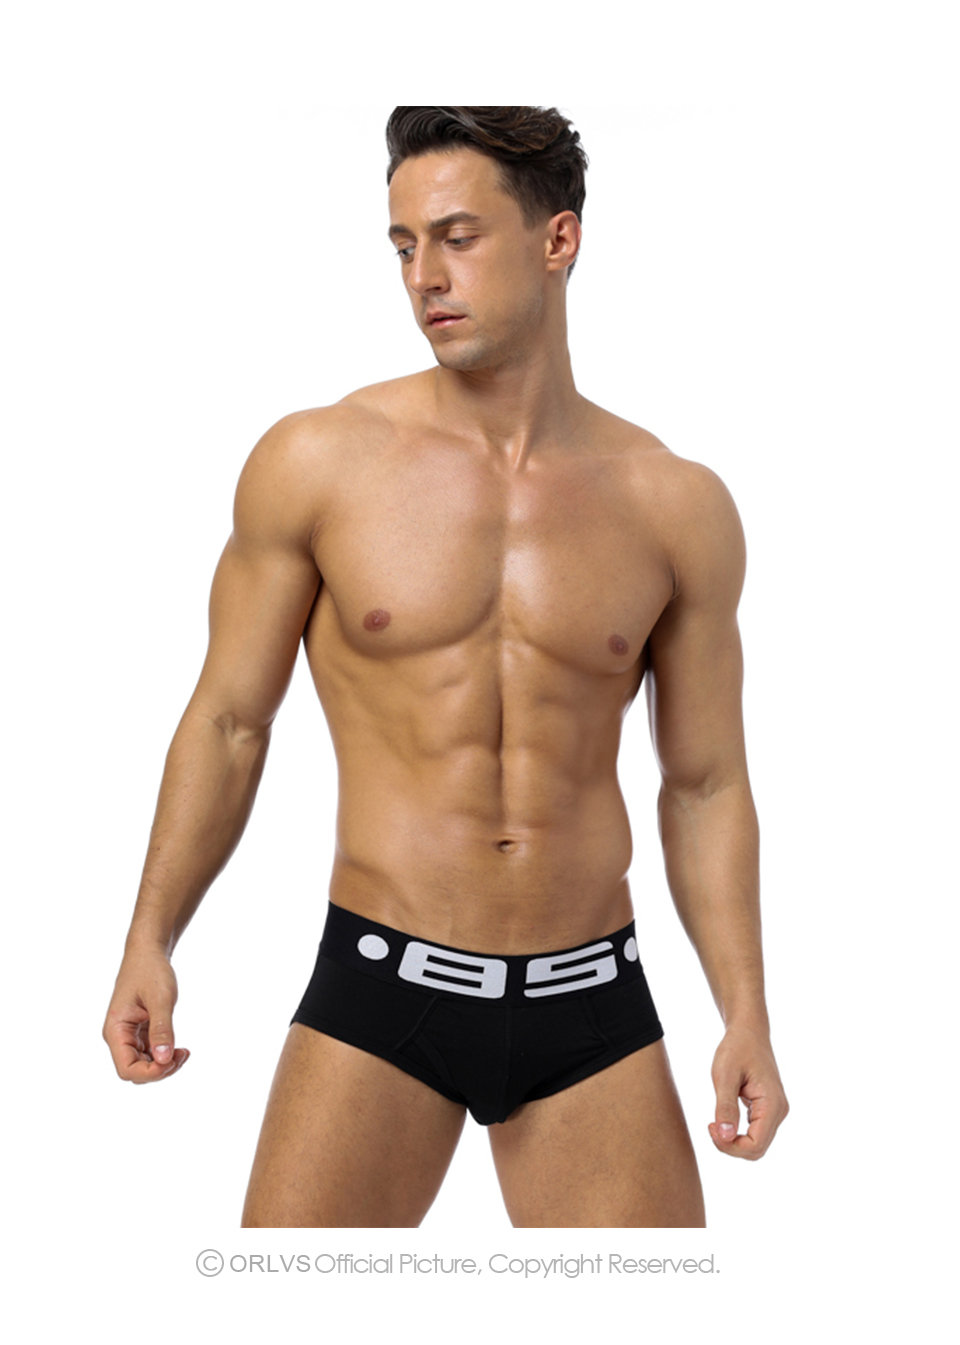 Men's Underwear Orlvs Brand Men Underwear Sexy Men Briefs Breathable Mens Slip Cueca Male Panties Underpants Briefs 4 Colors B102 Briefs